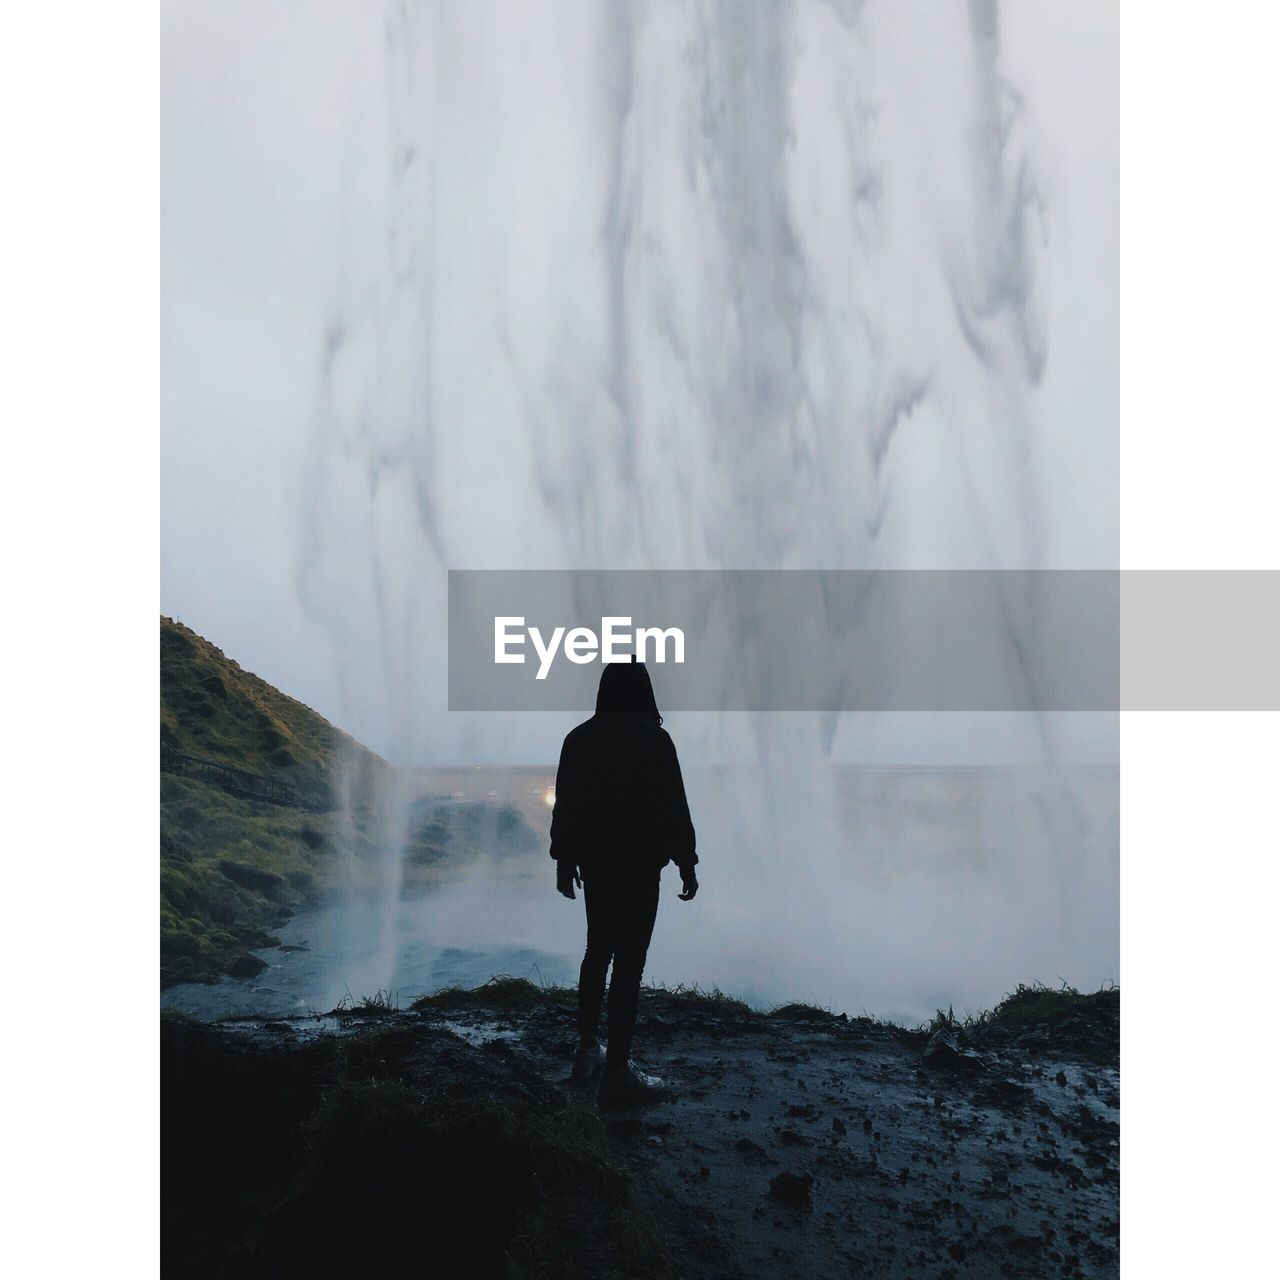 rear view, real people, leisure activity, lifestyles, nature, standing, auto post production filter, one person, water, transfer print, day, walking, beauty in nature, scenics - nature, full length, mountain, land, outdoors, power in nature, looking at view, watching